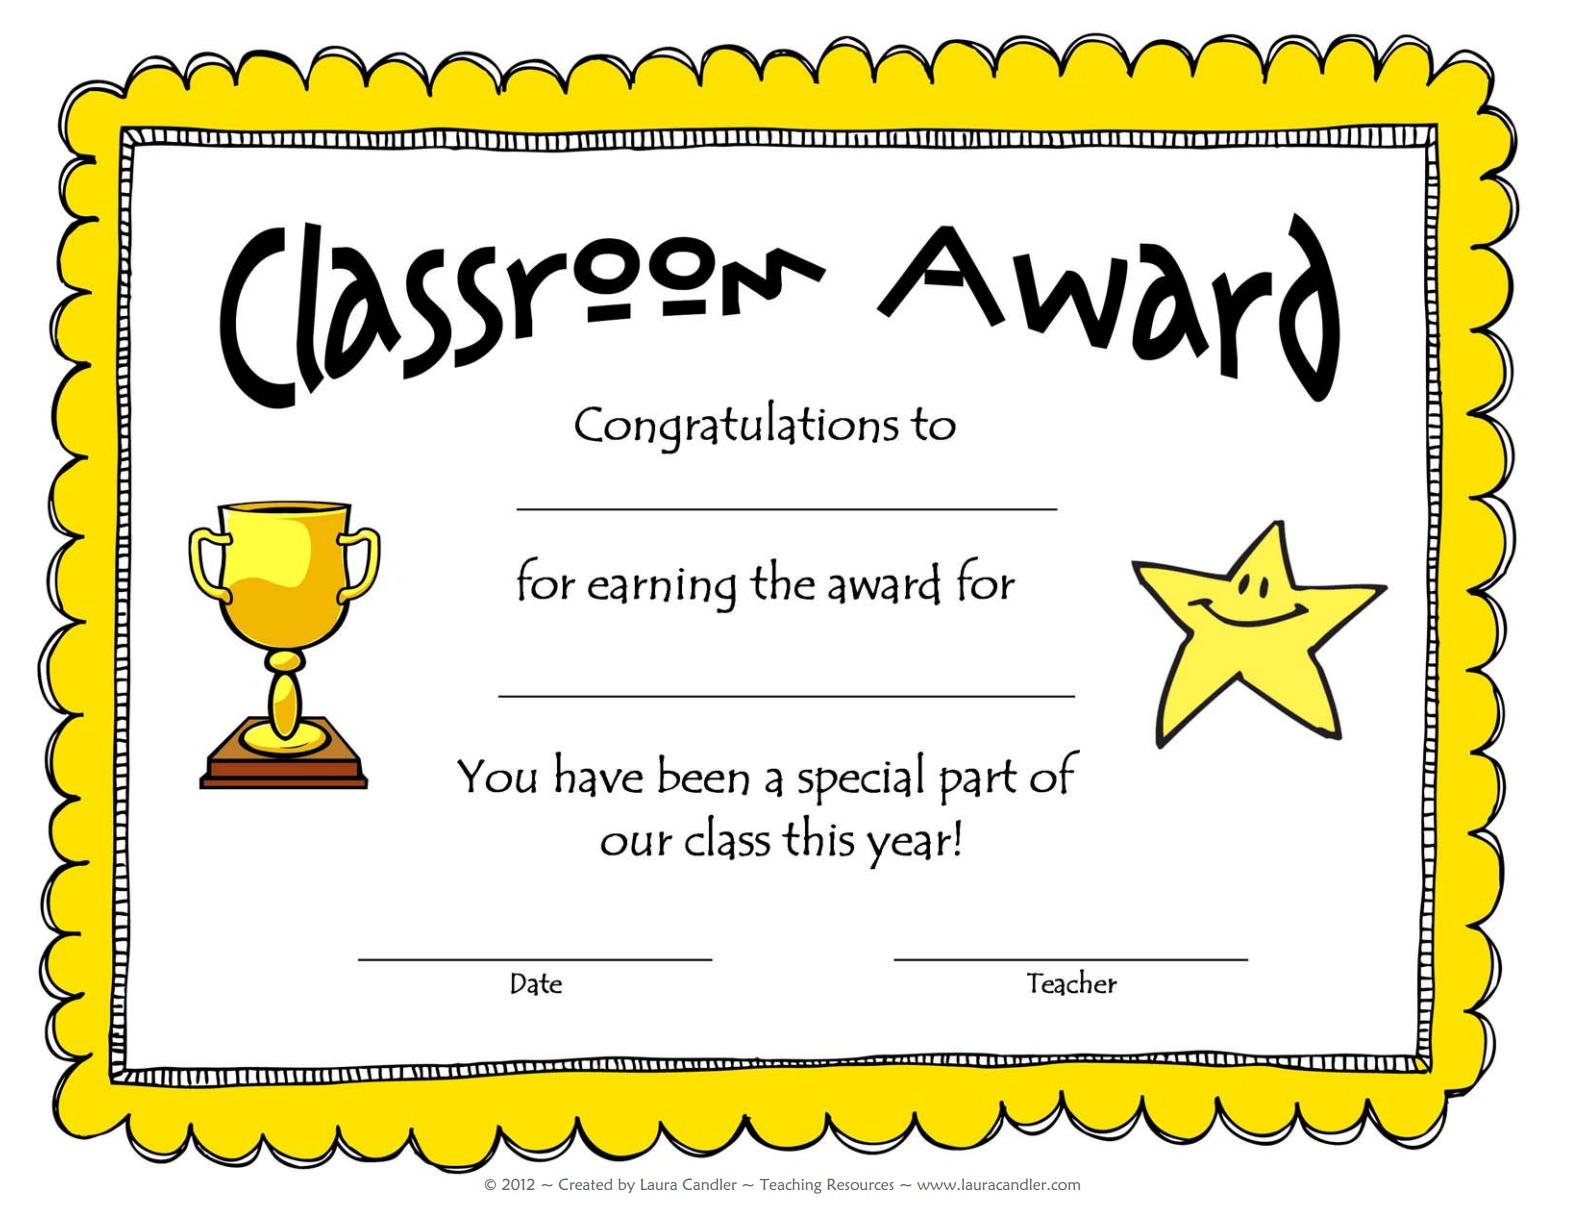 Free award template from laura candler school pinterest free award template from laura candler yadclub Choice Image